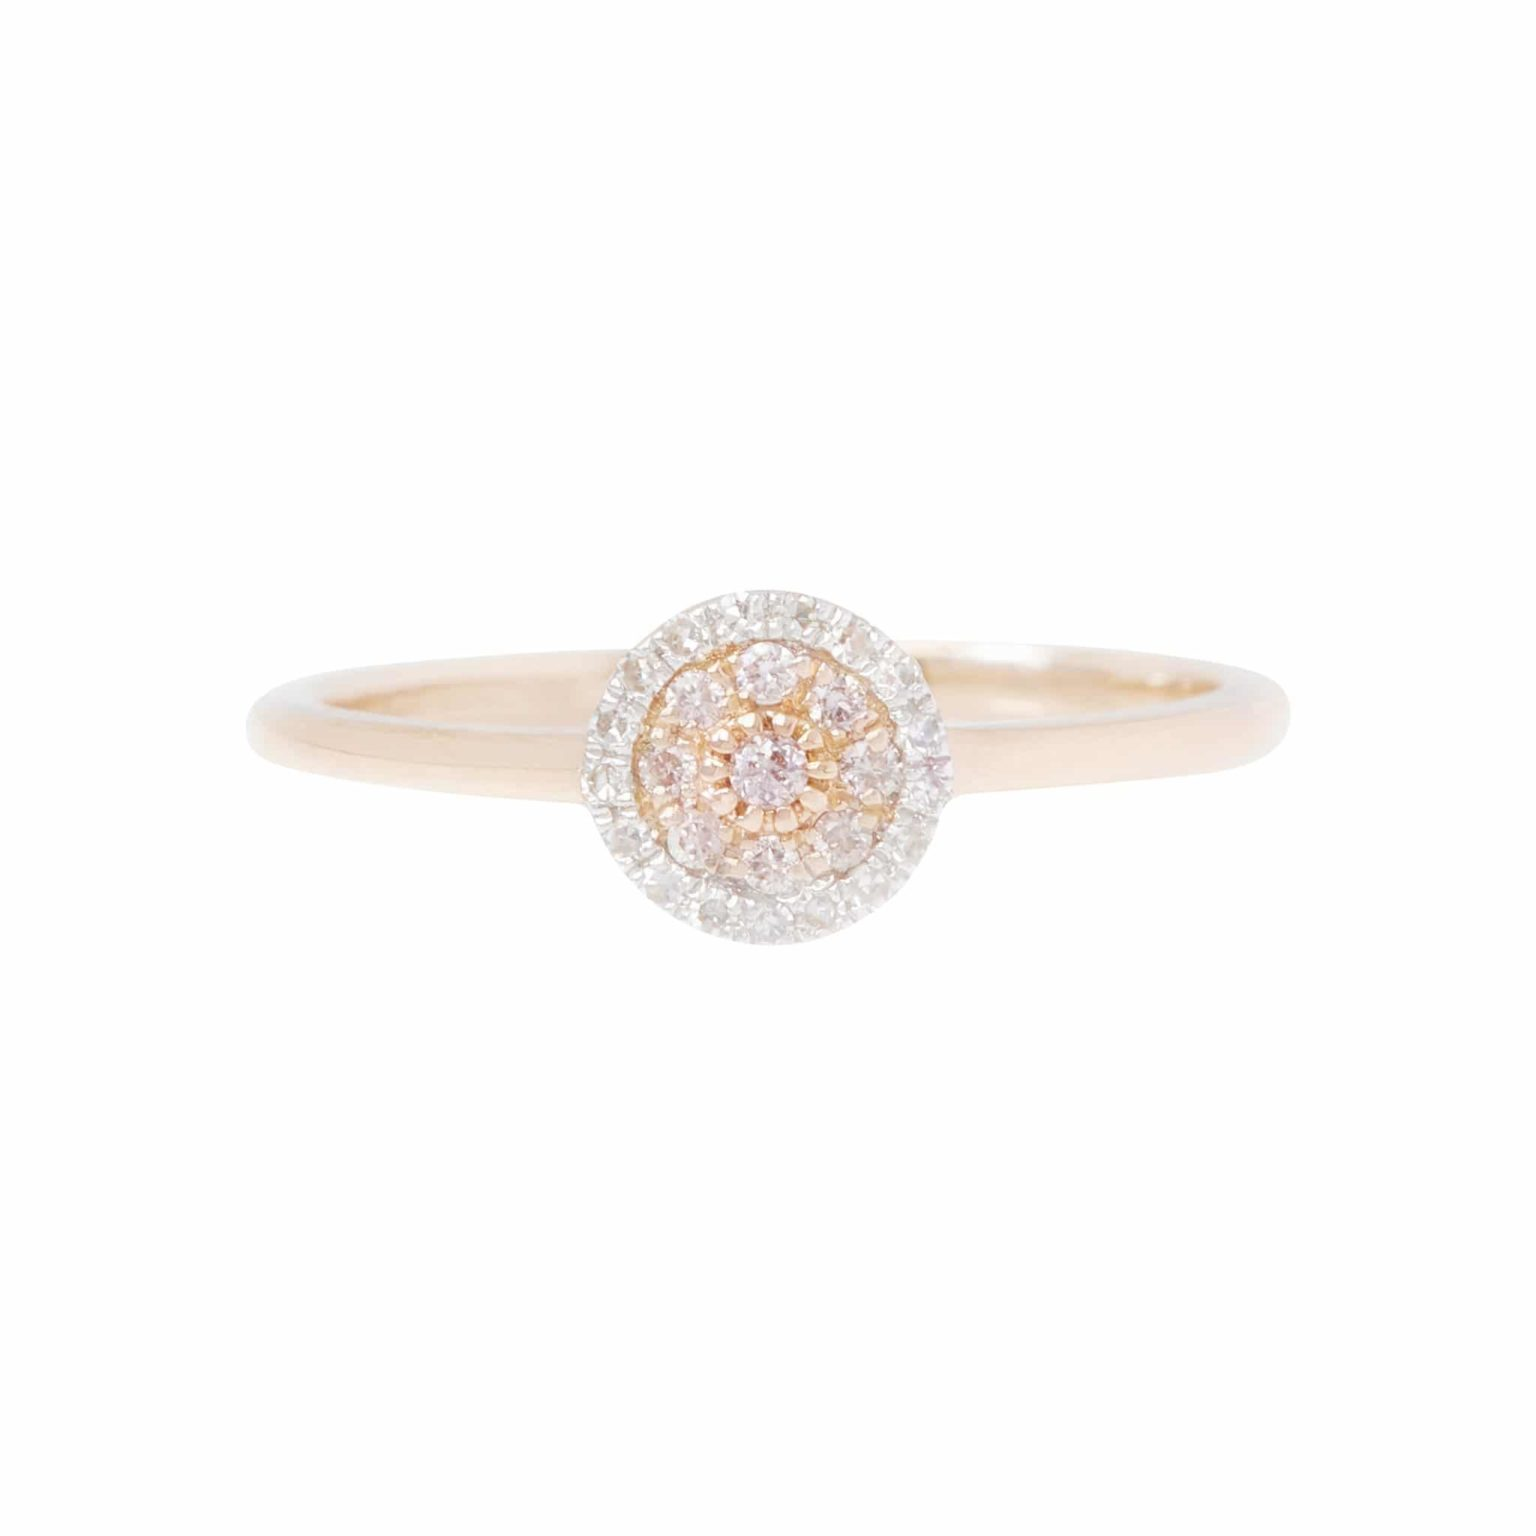 Eminence Pinks Diamond Disc Ring p5